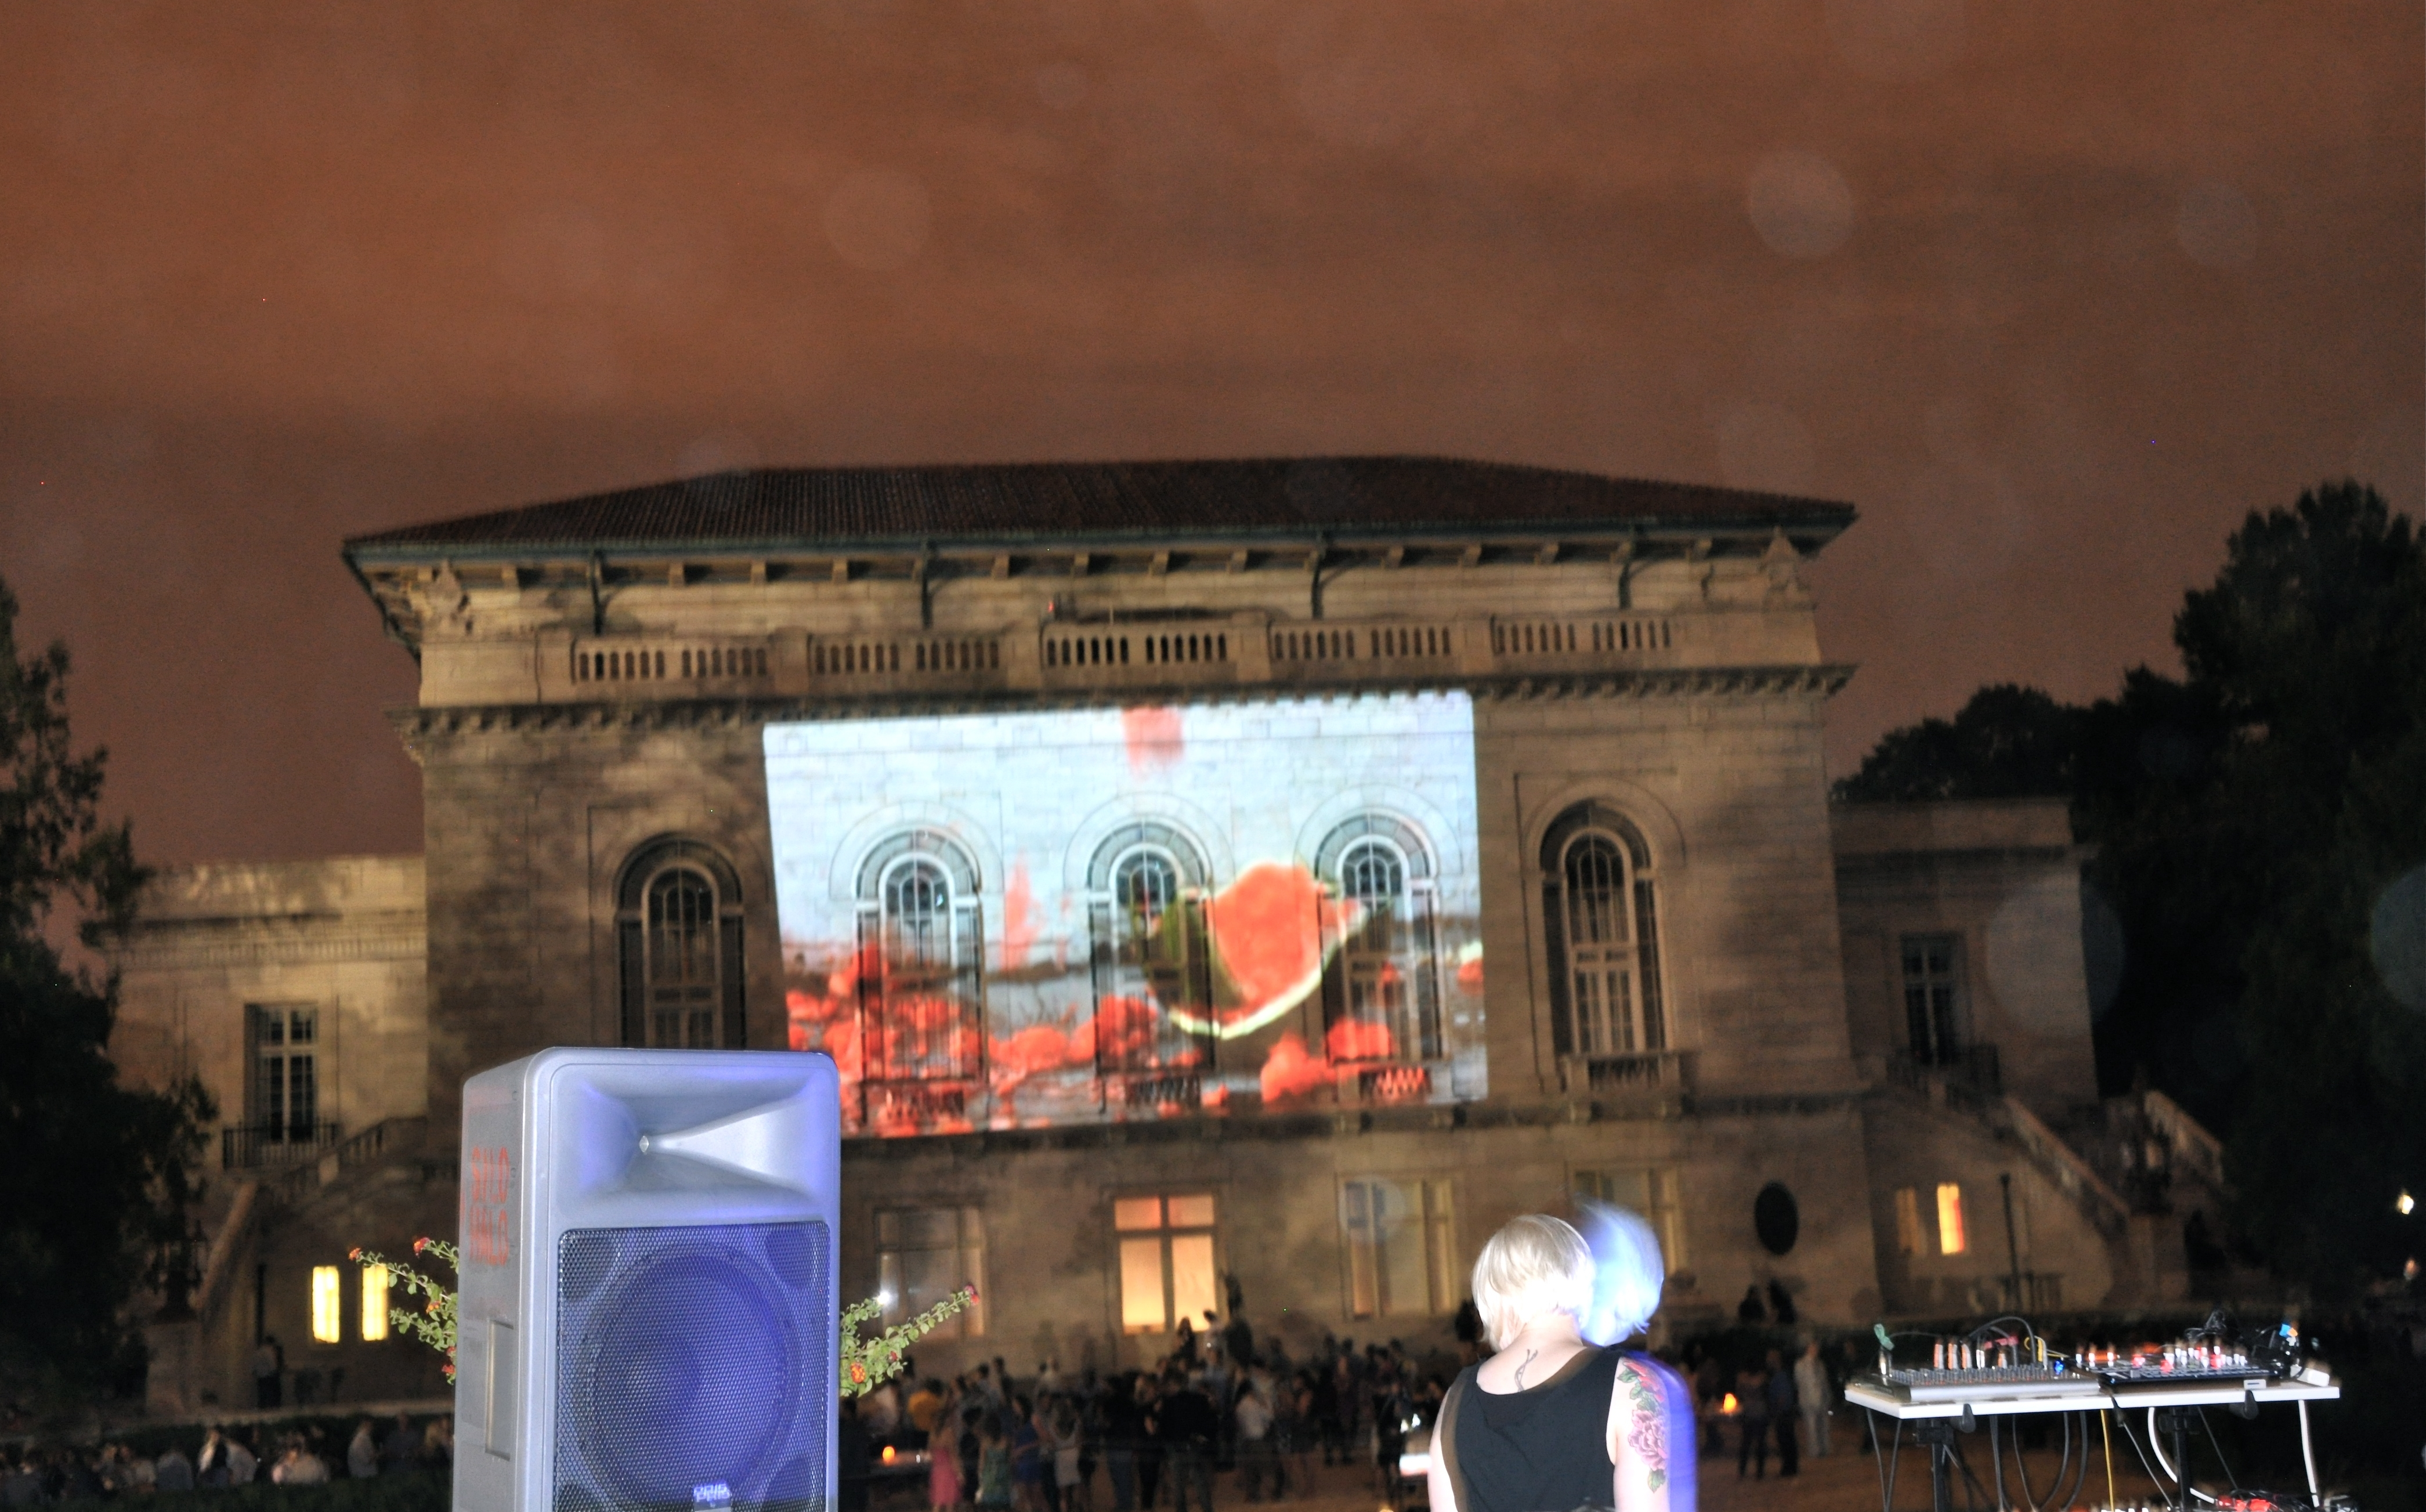 Live music, video art in a garden at Art After Dark